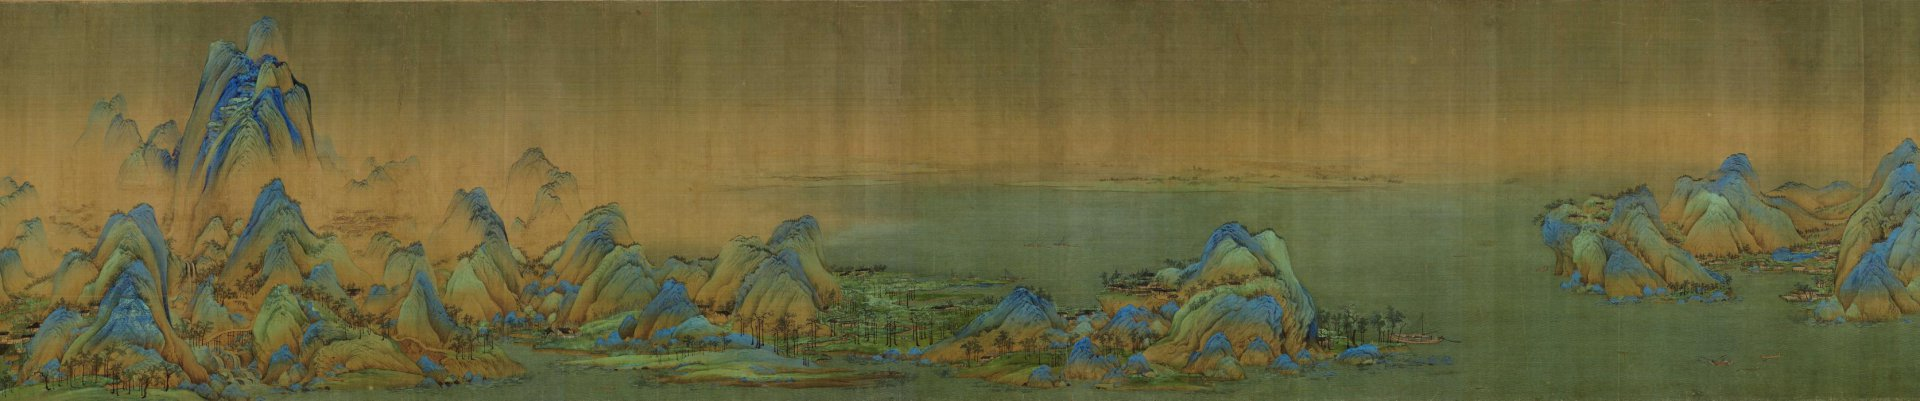 3.t1c_Wang_Ximeng._A_Thousand_Li_of_Rivers_and_Mountains..jpg